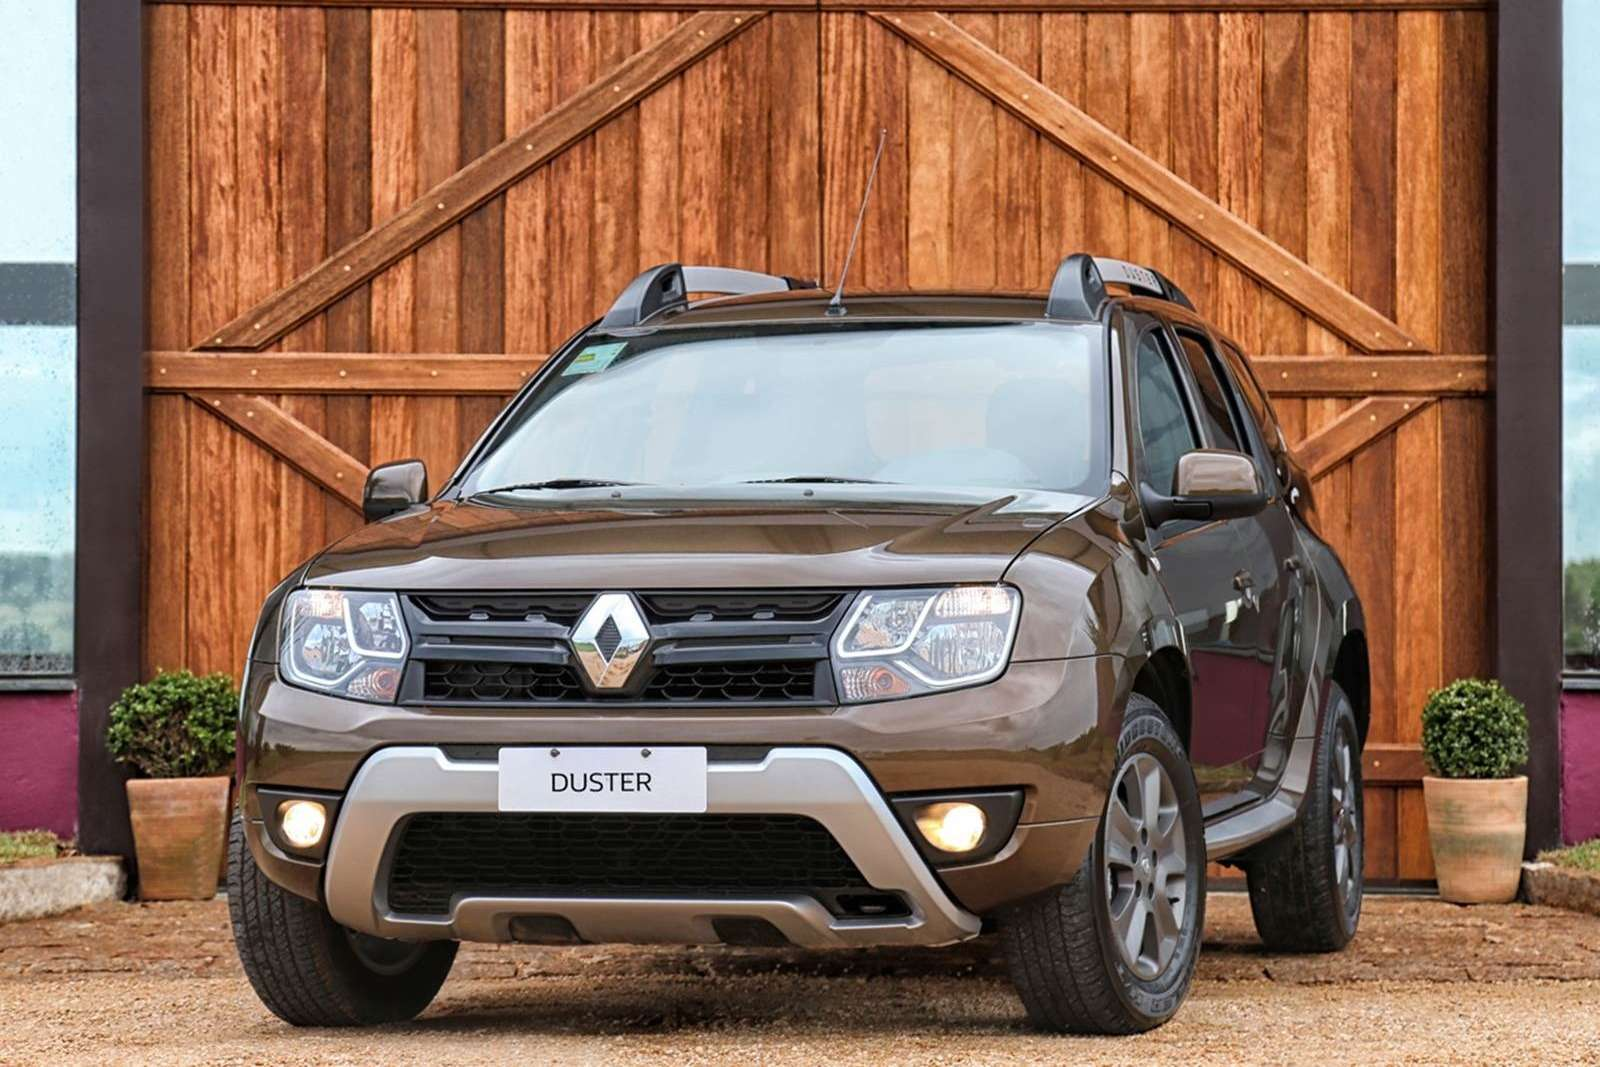 2016-renault-duster-launched-with-new-look-better-economy-in-brazil-photo-gallery_6